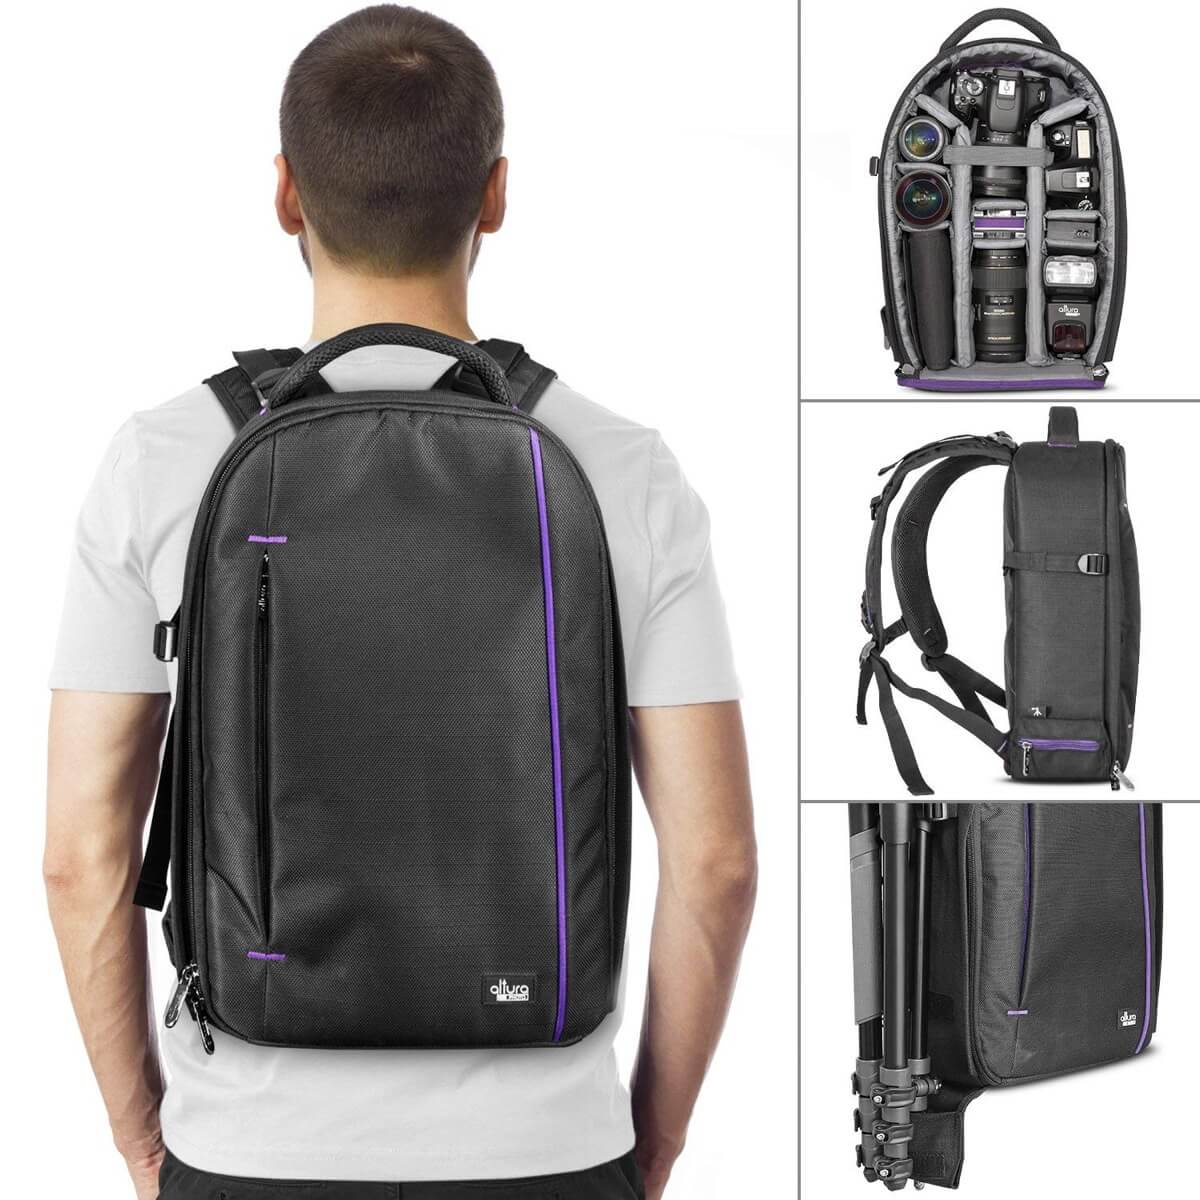 DSLR Camera and Mirrorless Backpack Bag by Altura Photo